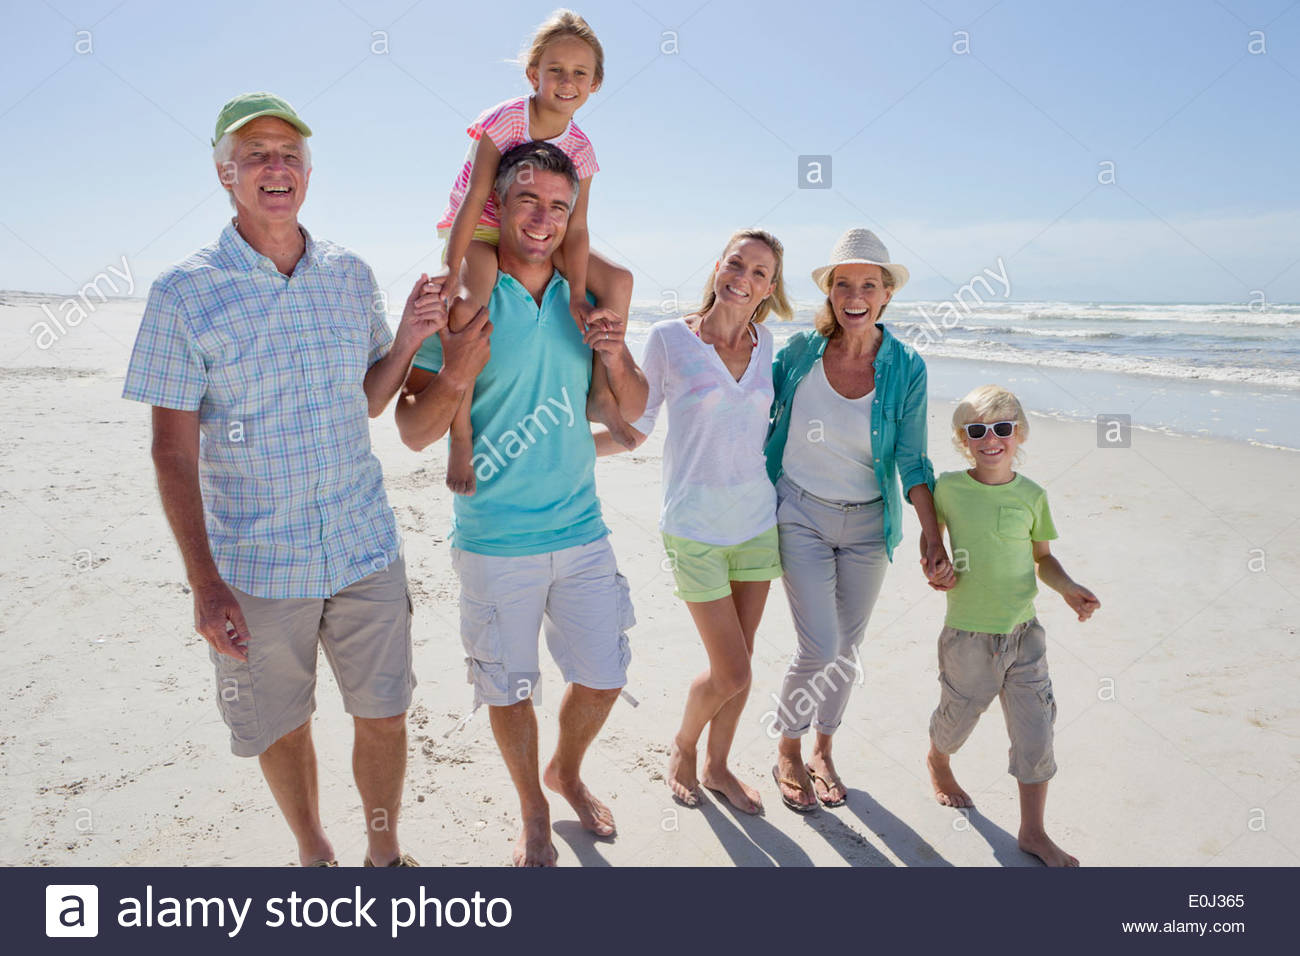 Portrait of smiling multi-generation family walking on sunny beach - Stock Image